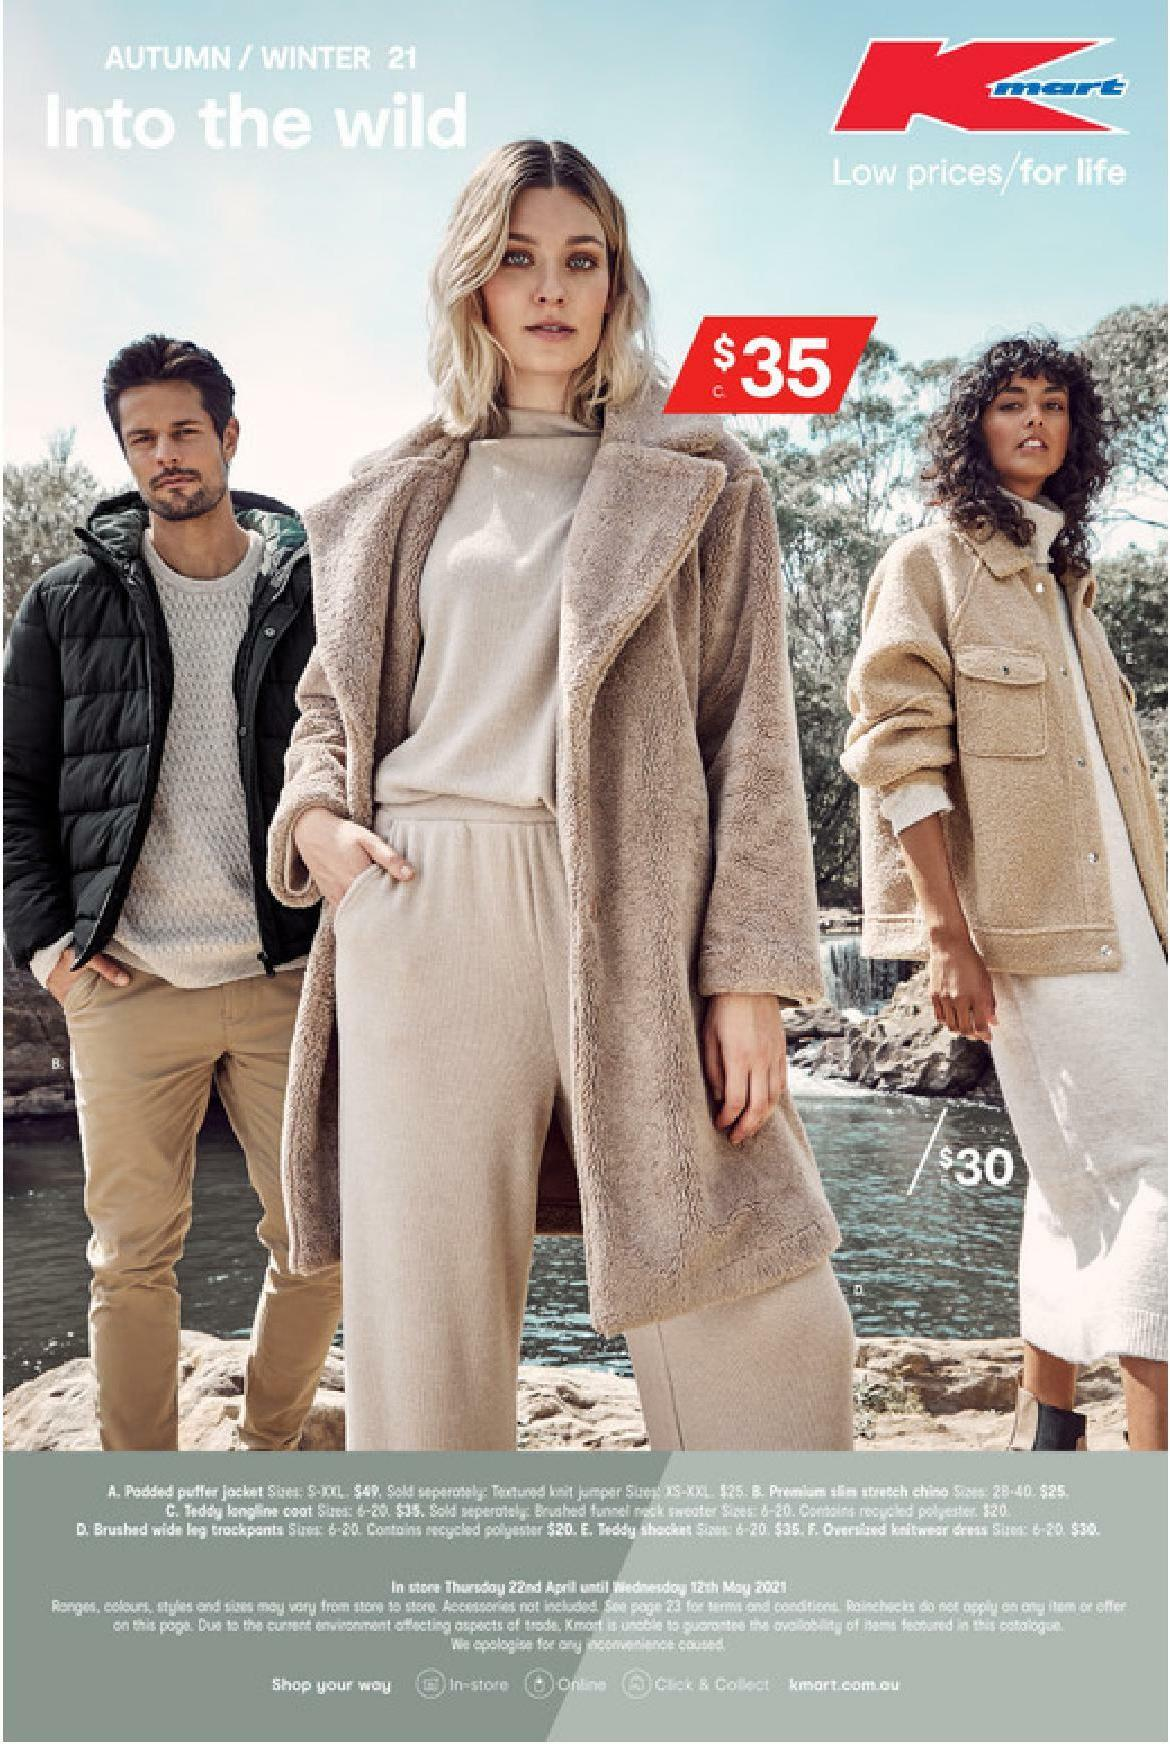 Kmart Catalogues from April 22